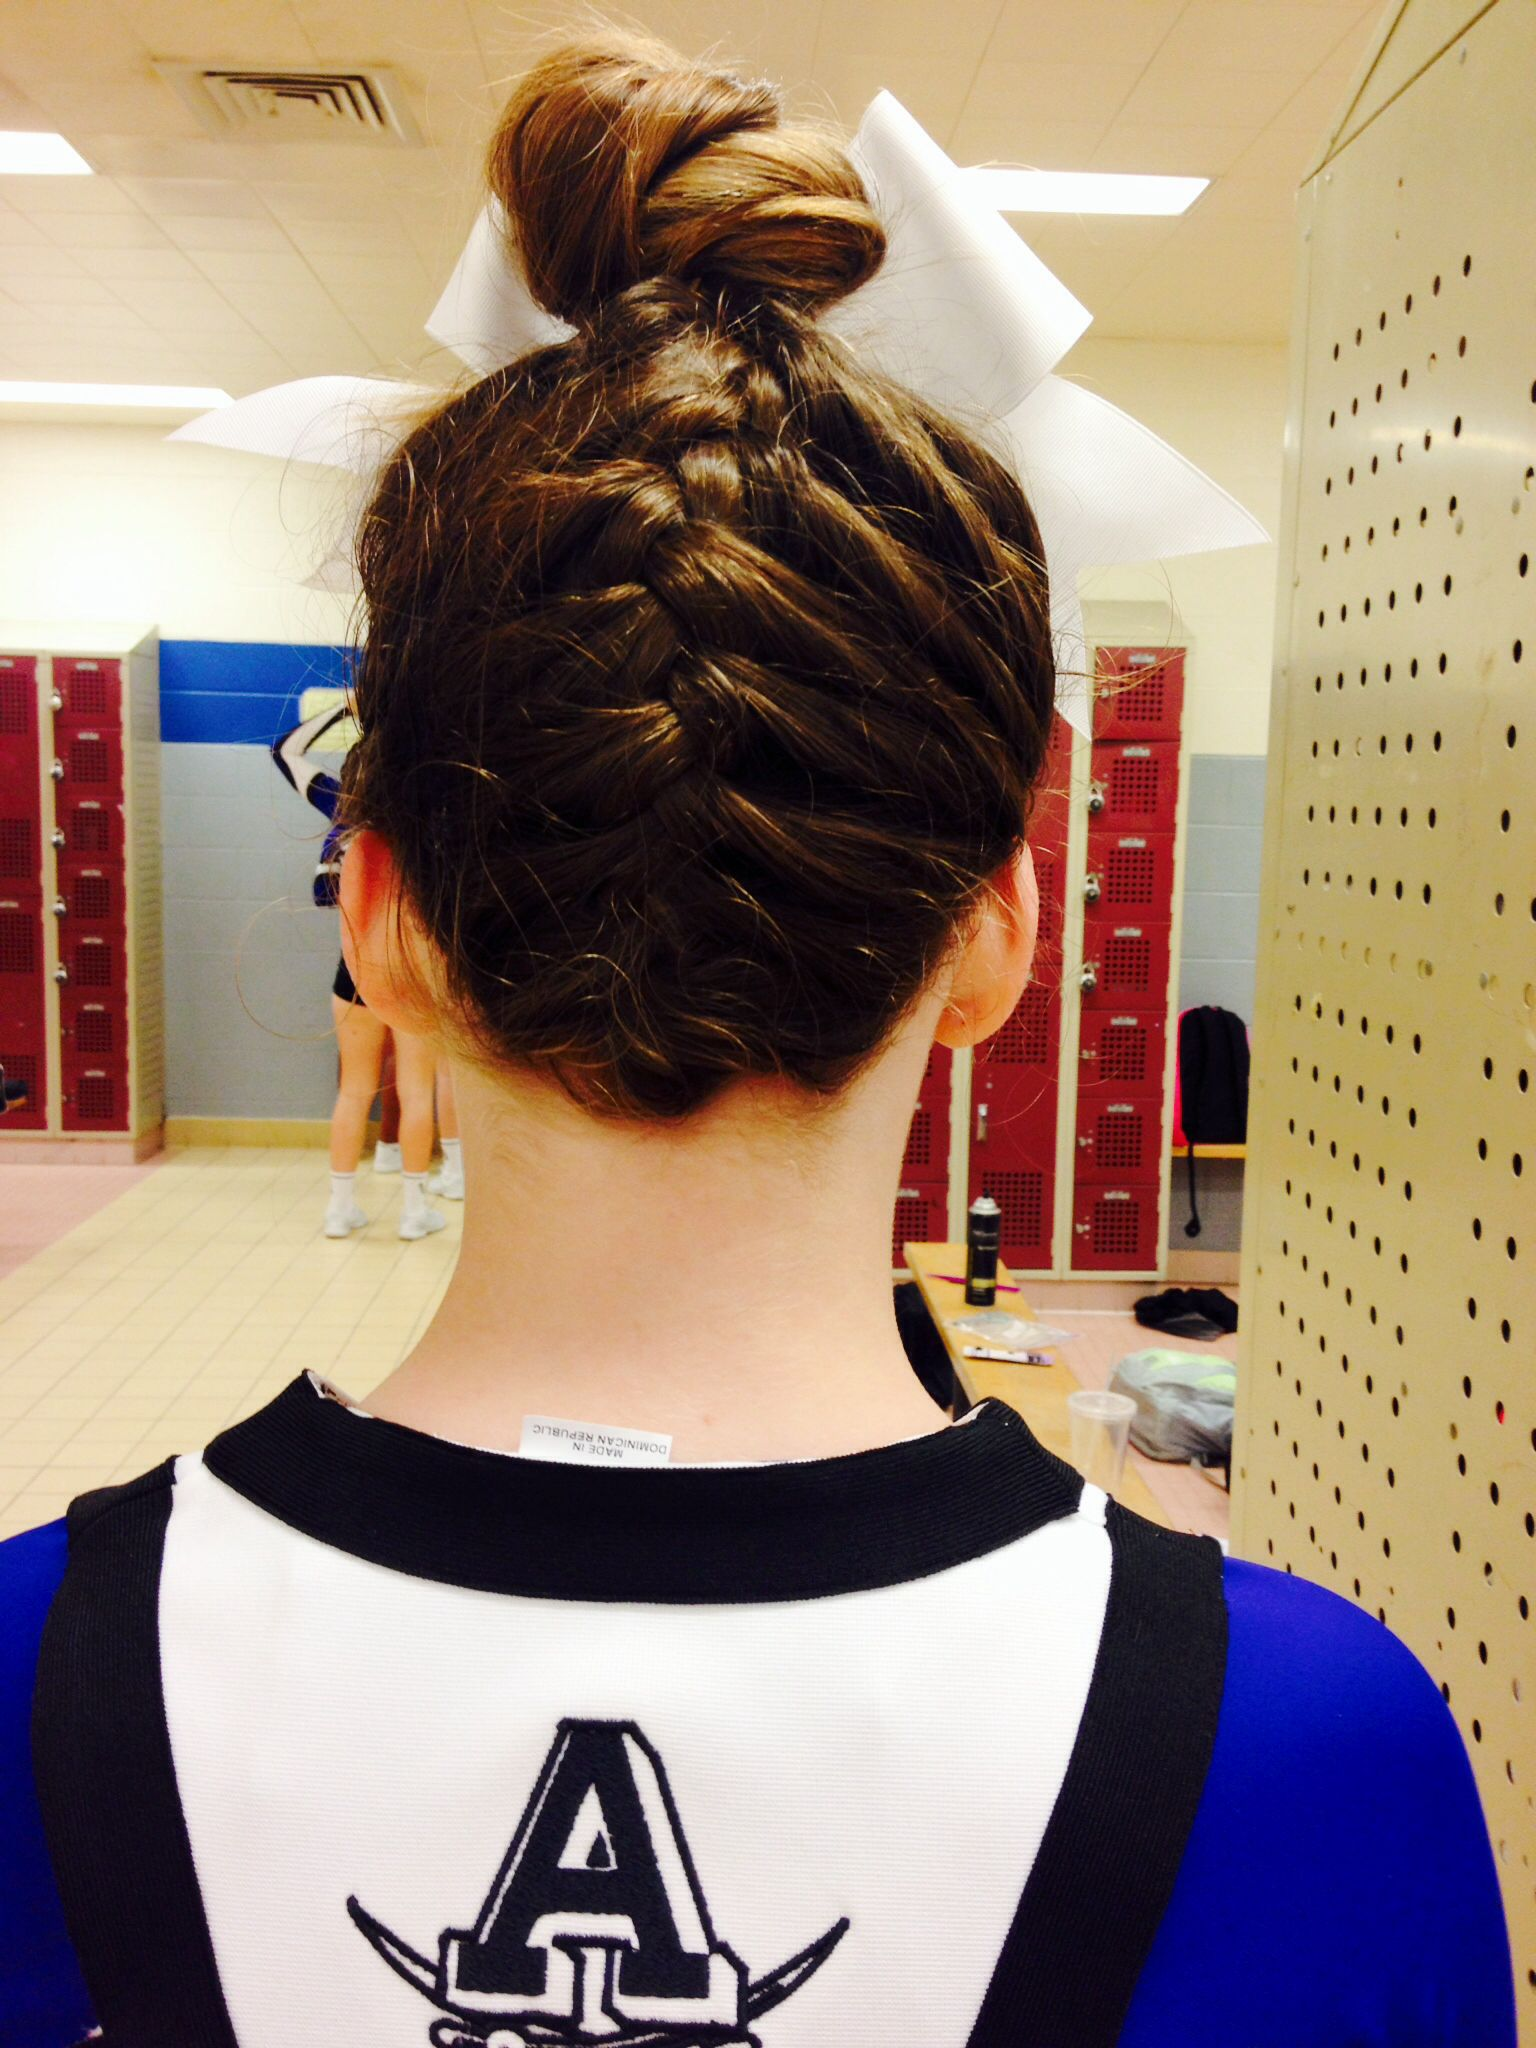 cheer hair | cheer hair | cheer hair, hair styles, long hair